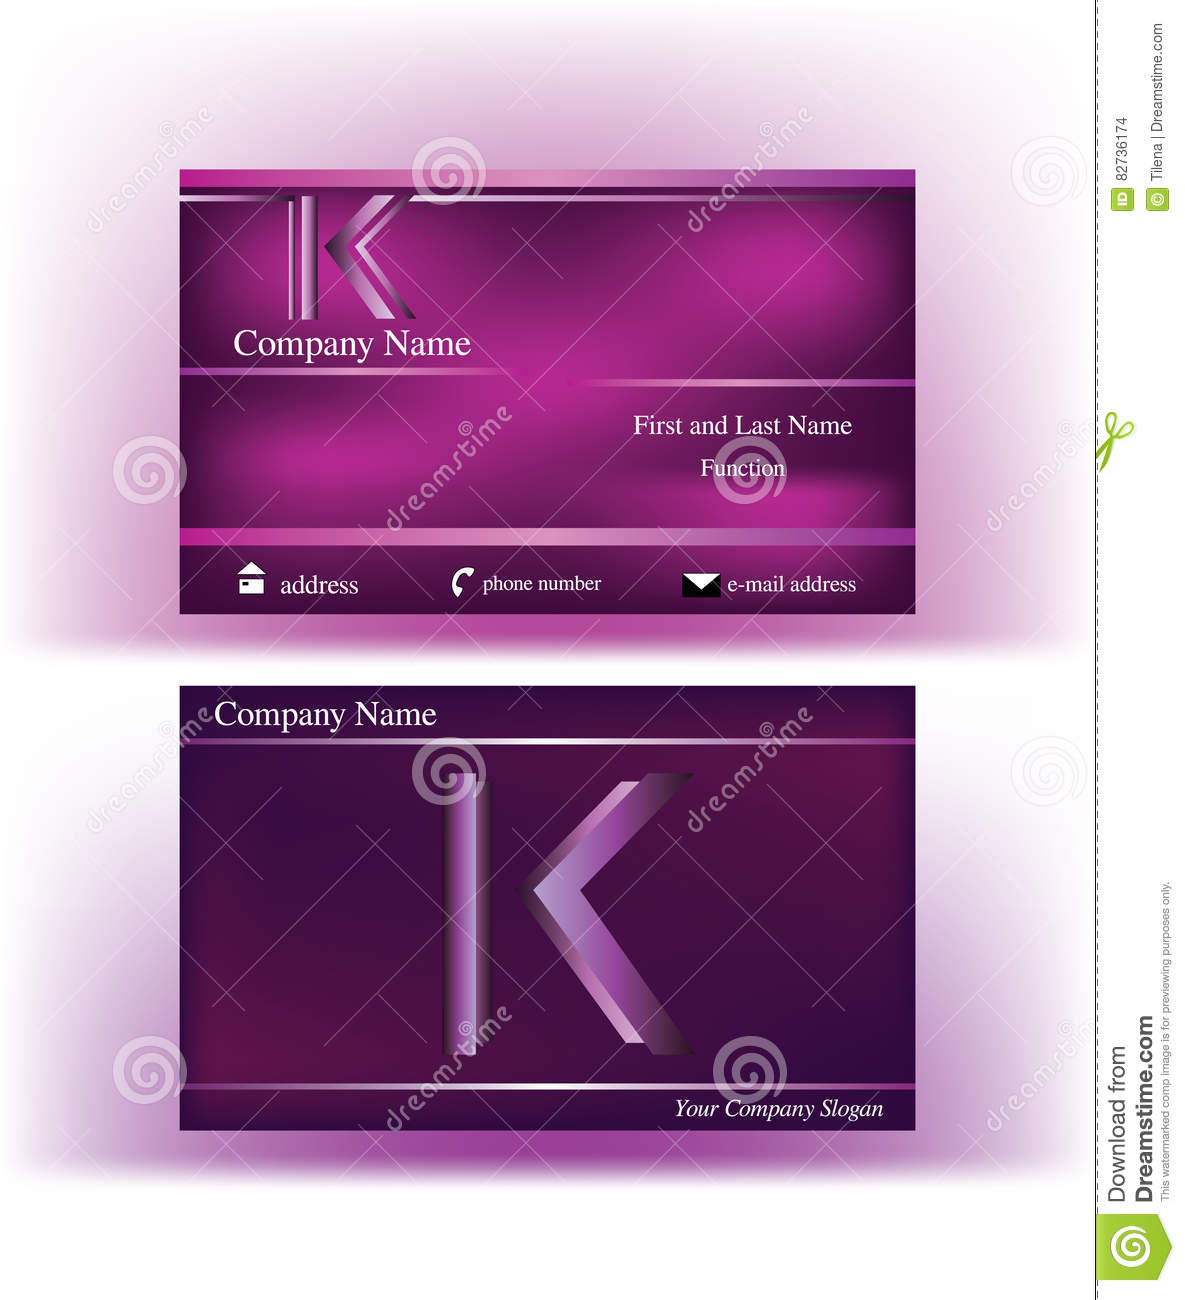 Business card with abstract k letter logo stock vector download business card with abstract k letter logo stock vector illustration of company construction colourmoves